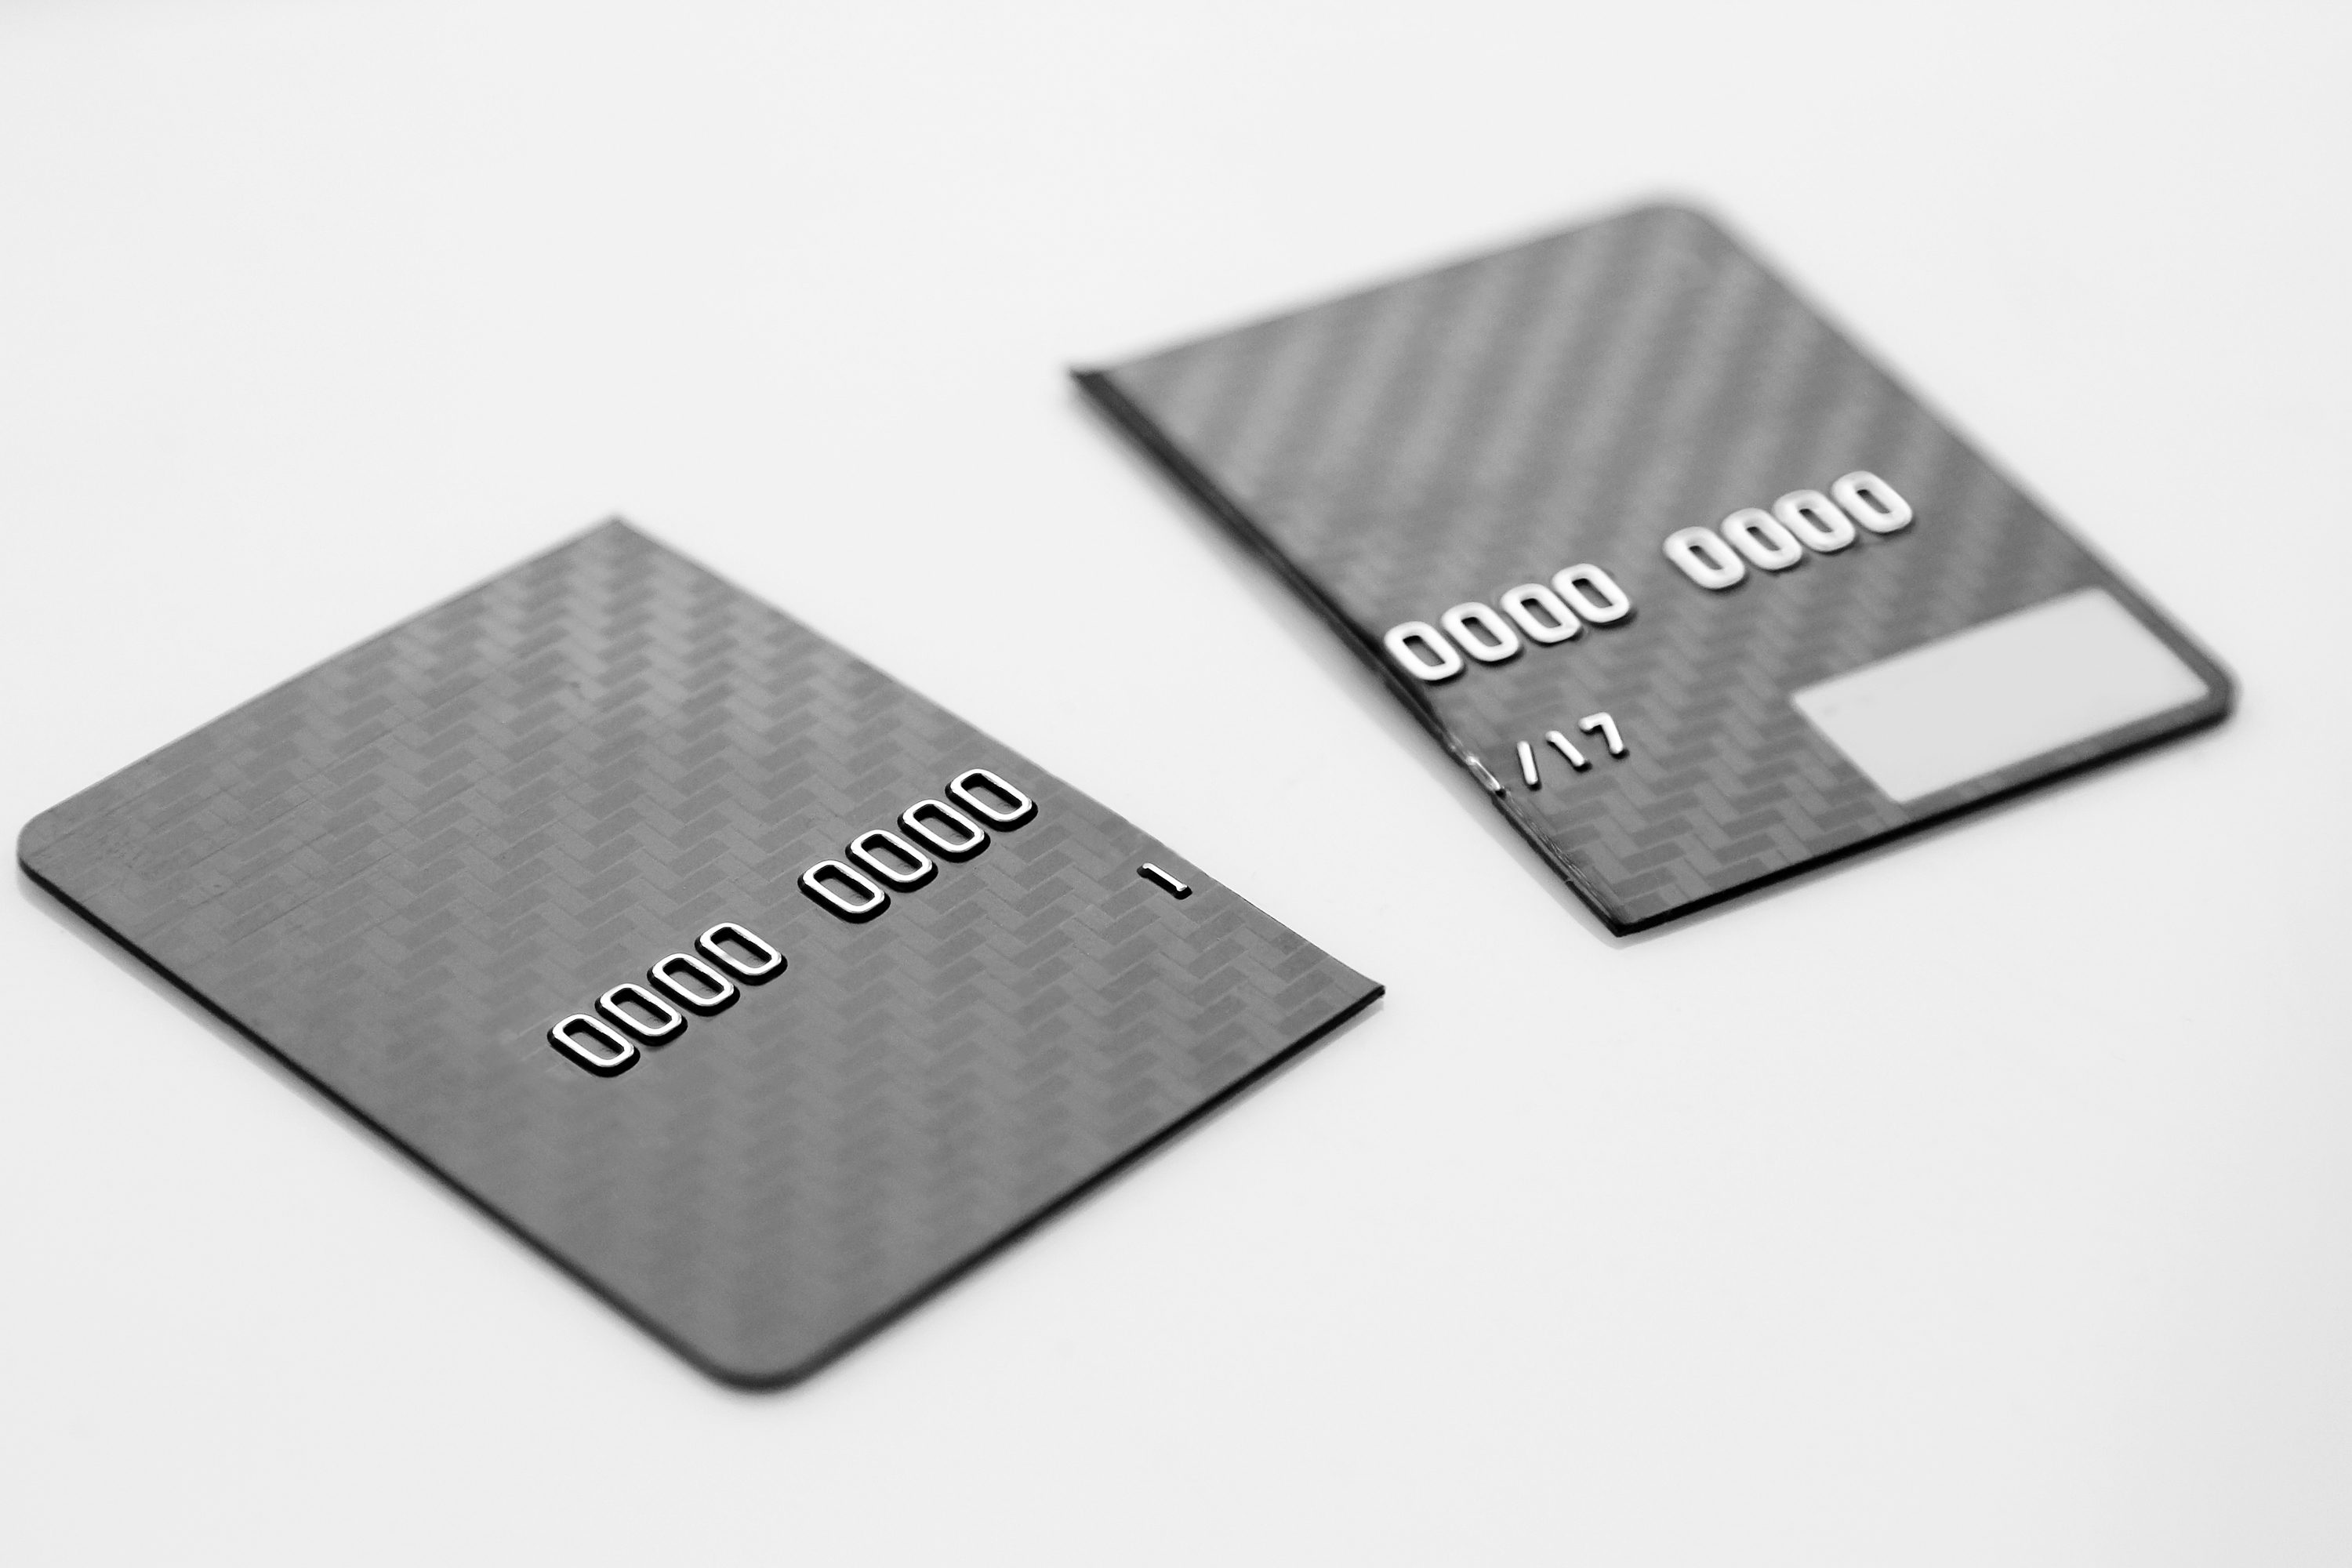 closeup of broken credit card, captured with a small depth of field. Black and white picture